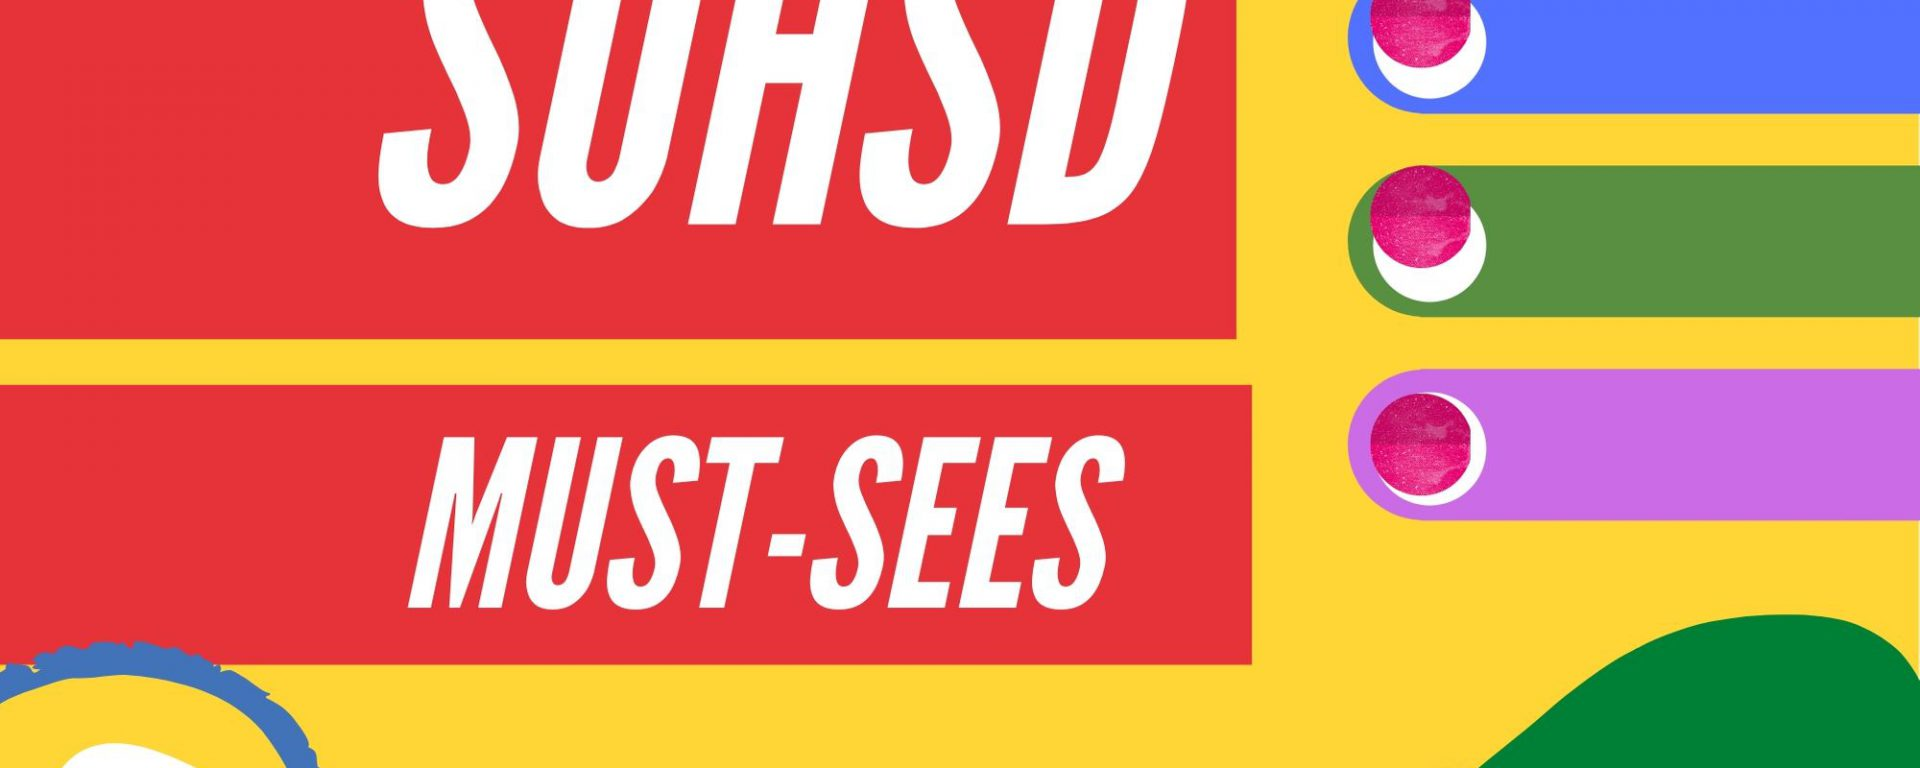 SUHSD Must-Sees - June 23rd 2020; SUHSD Virtual Town Hall, SUHSD Served More Than 1 Million Meals in South Bay Since Schools Shutdown, Superintendent's Message